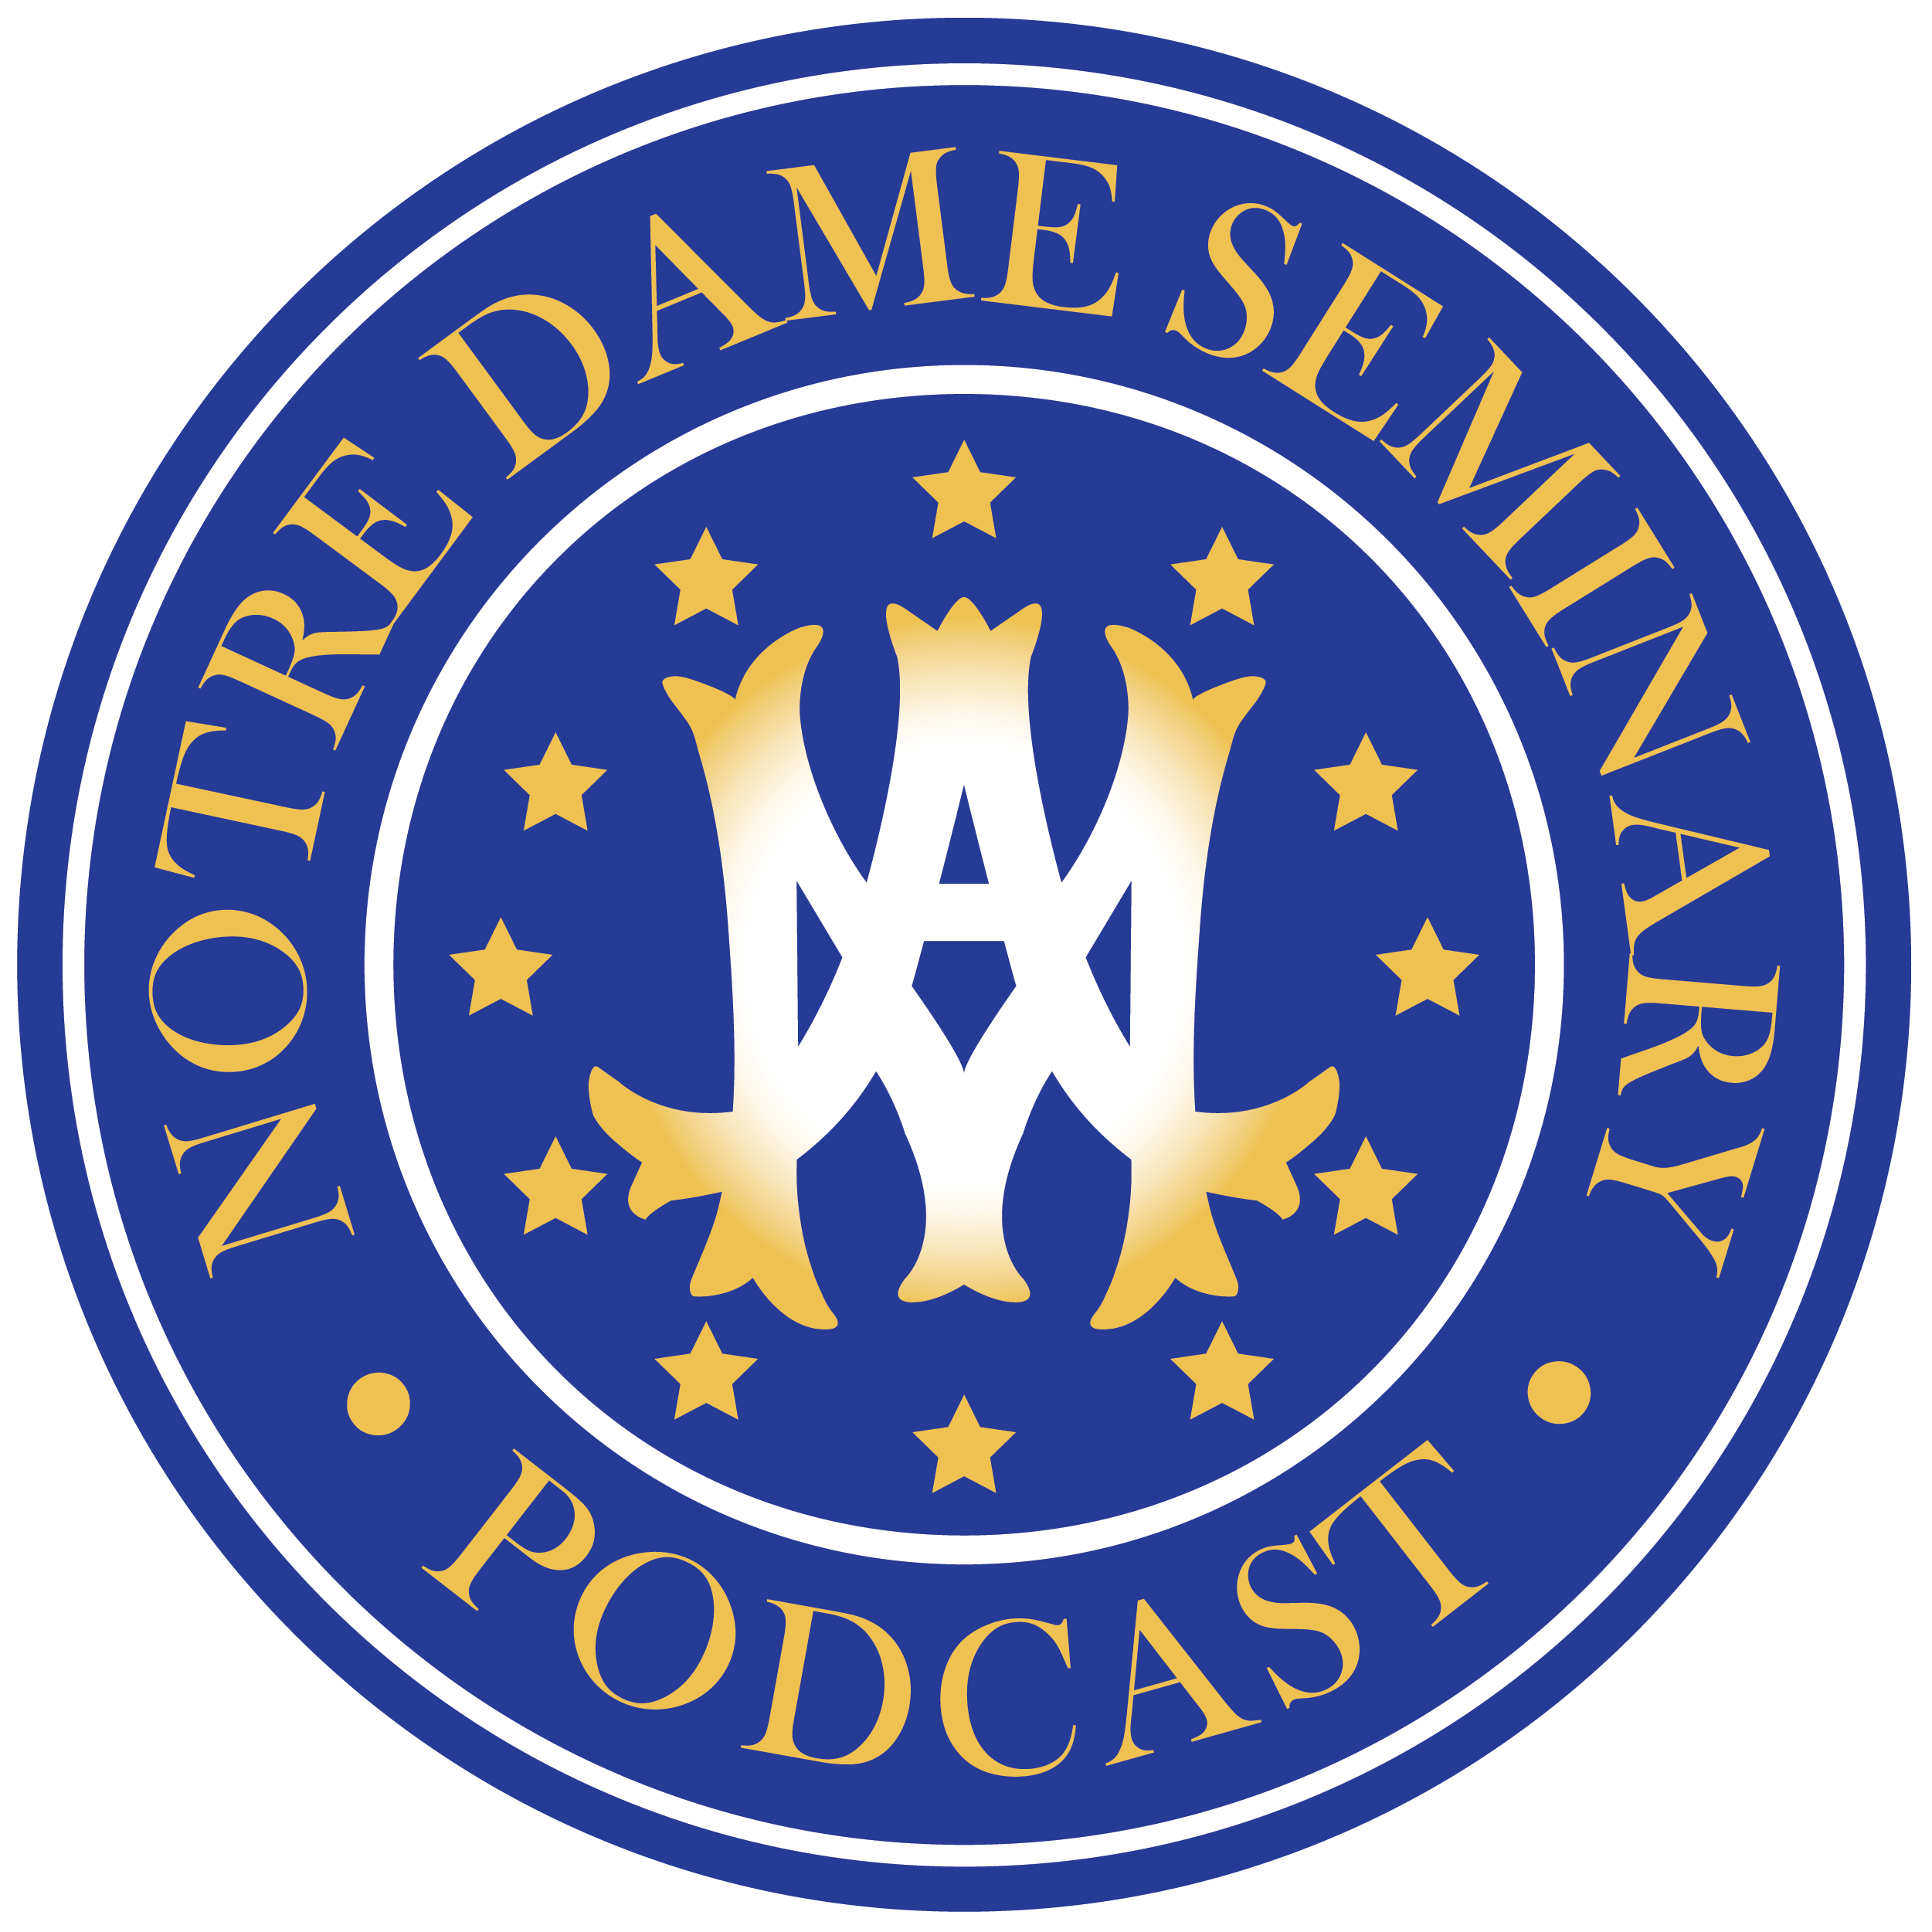 Podcasts – Notre Dame Seminary